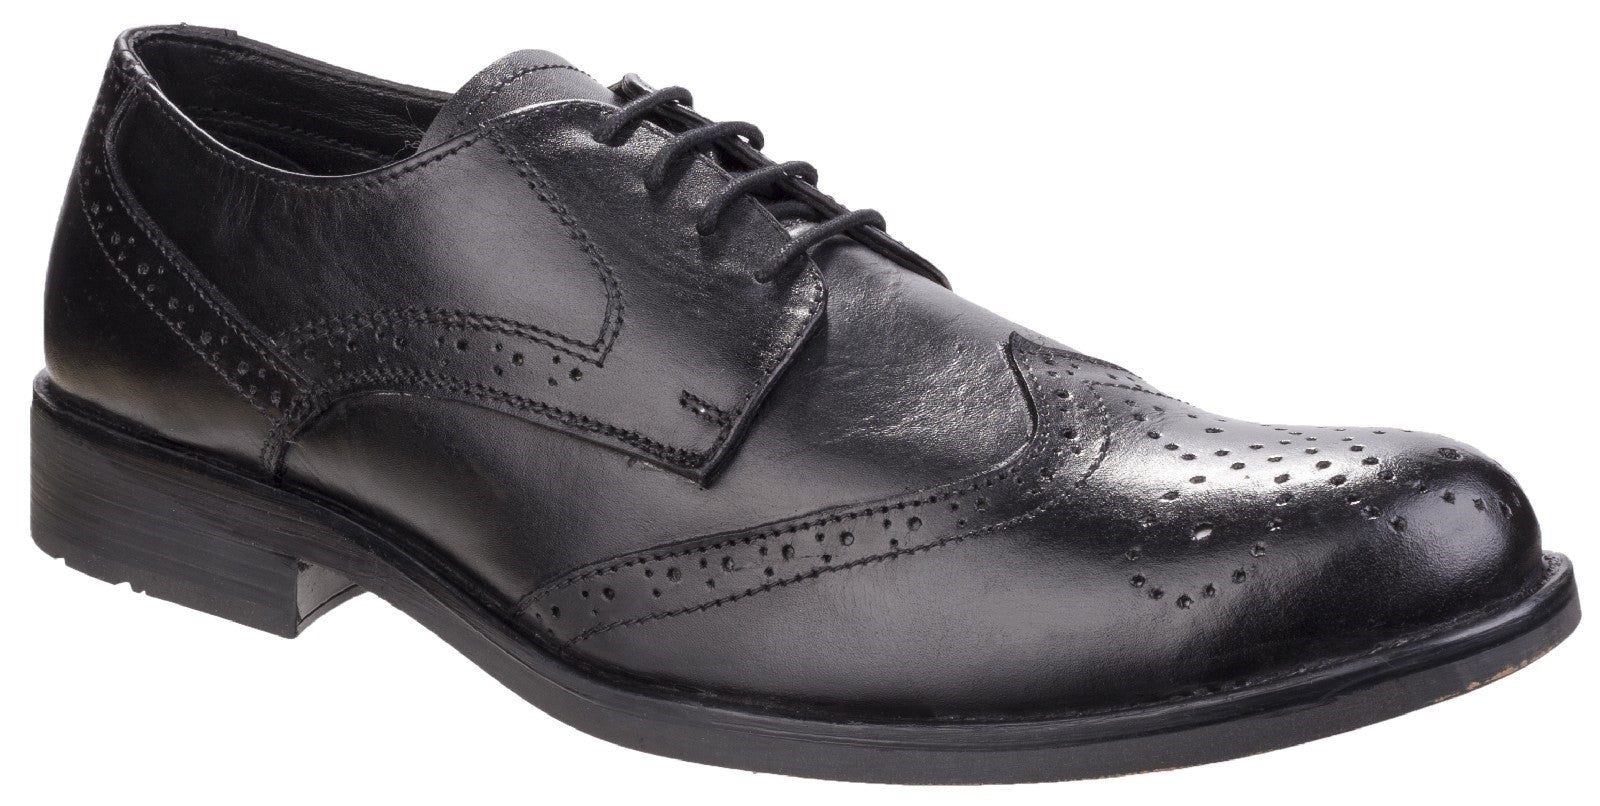 Fleet & Foster Women's Tom Lace Shoe Black 24954-41298